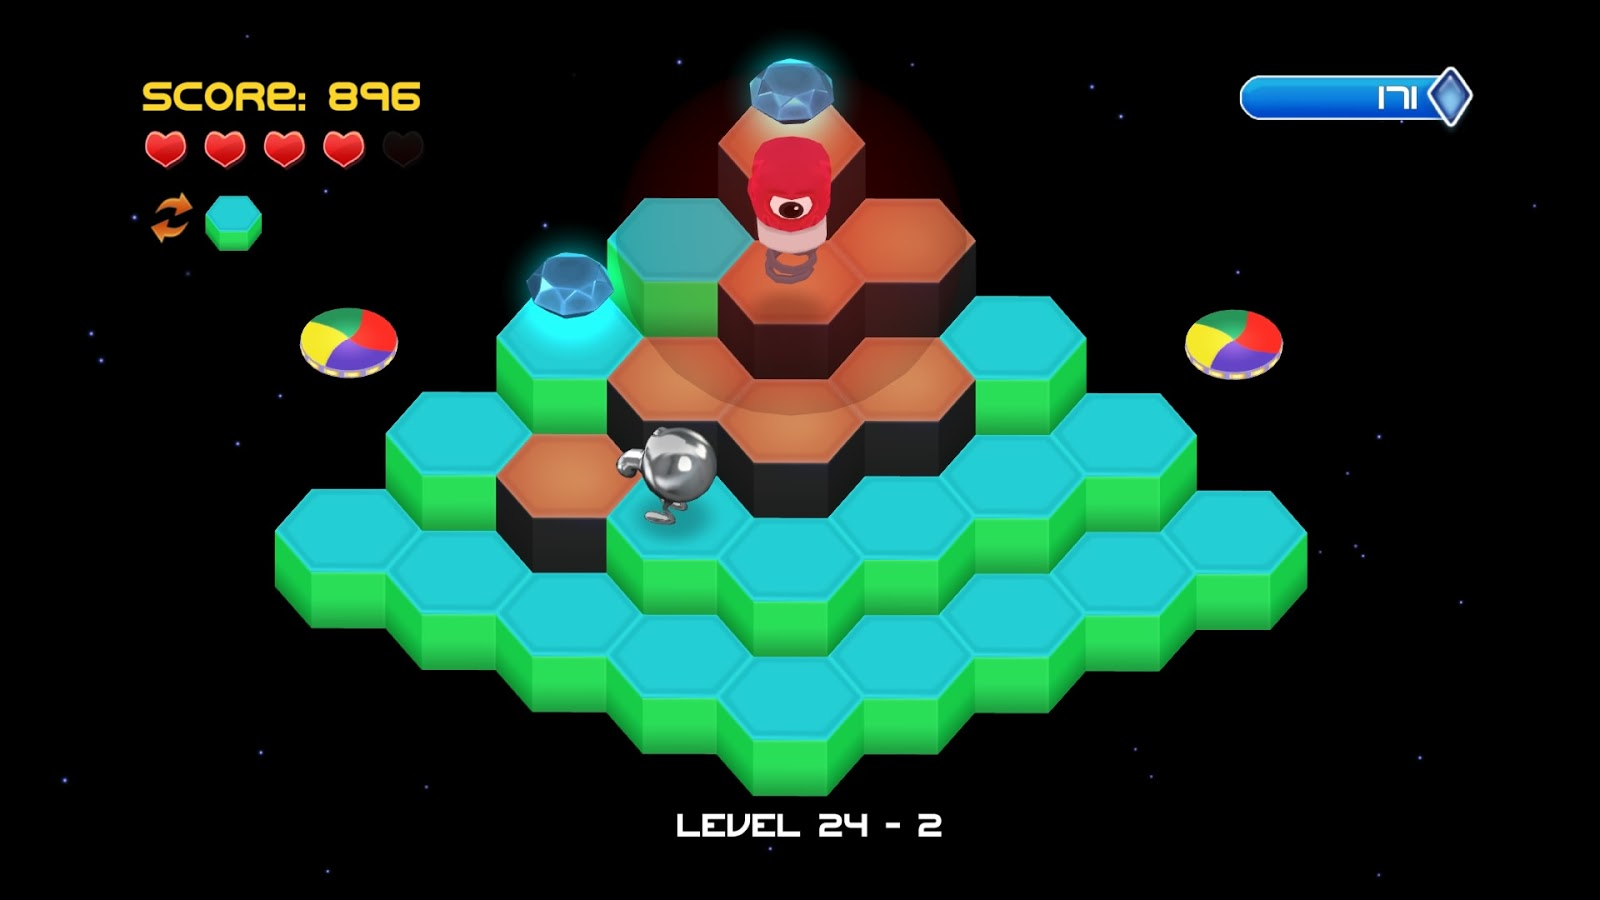 Controls Are Way Too Touchy While The Original Game Was Designed Around Hopping On Cubes Rebooted Puts You In A Field Of Hexagons